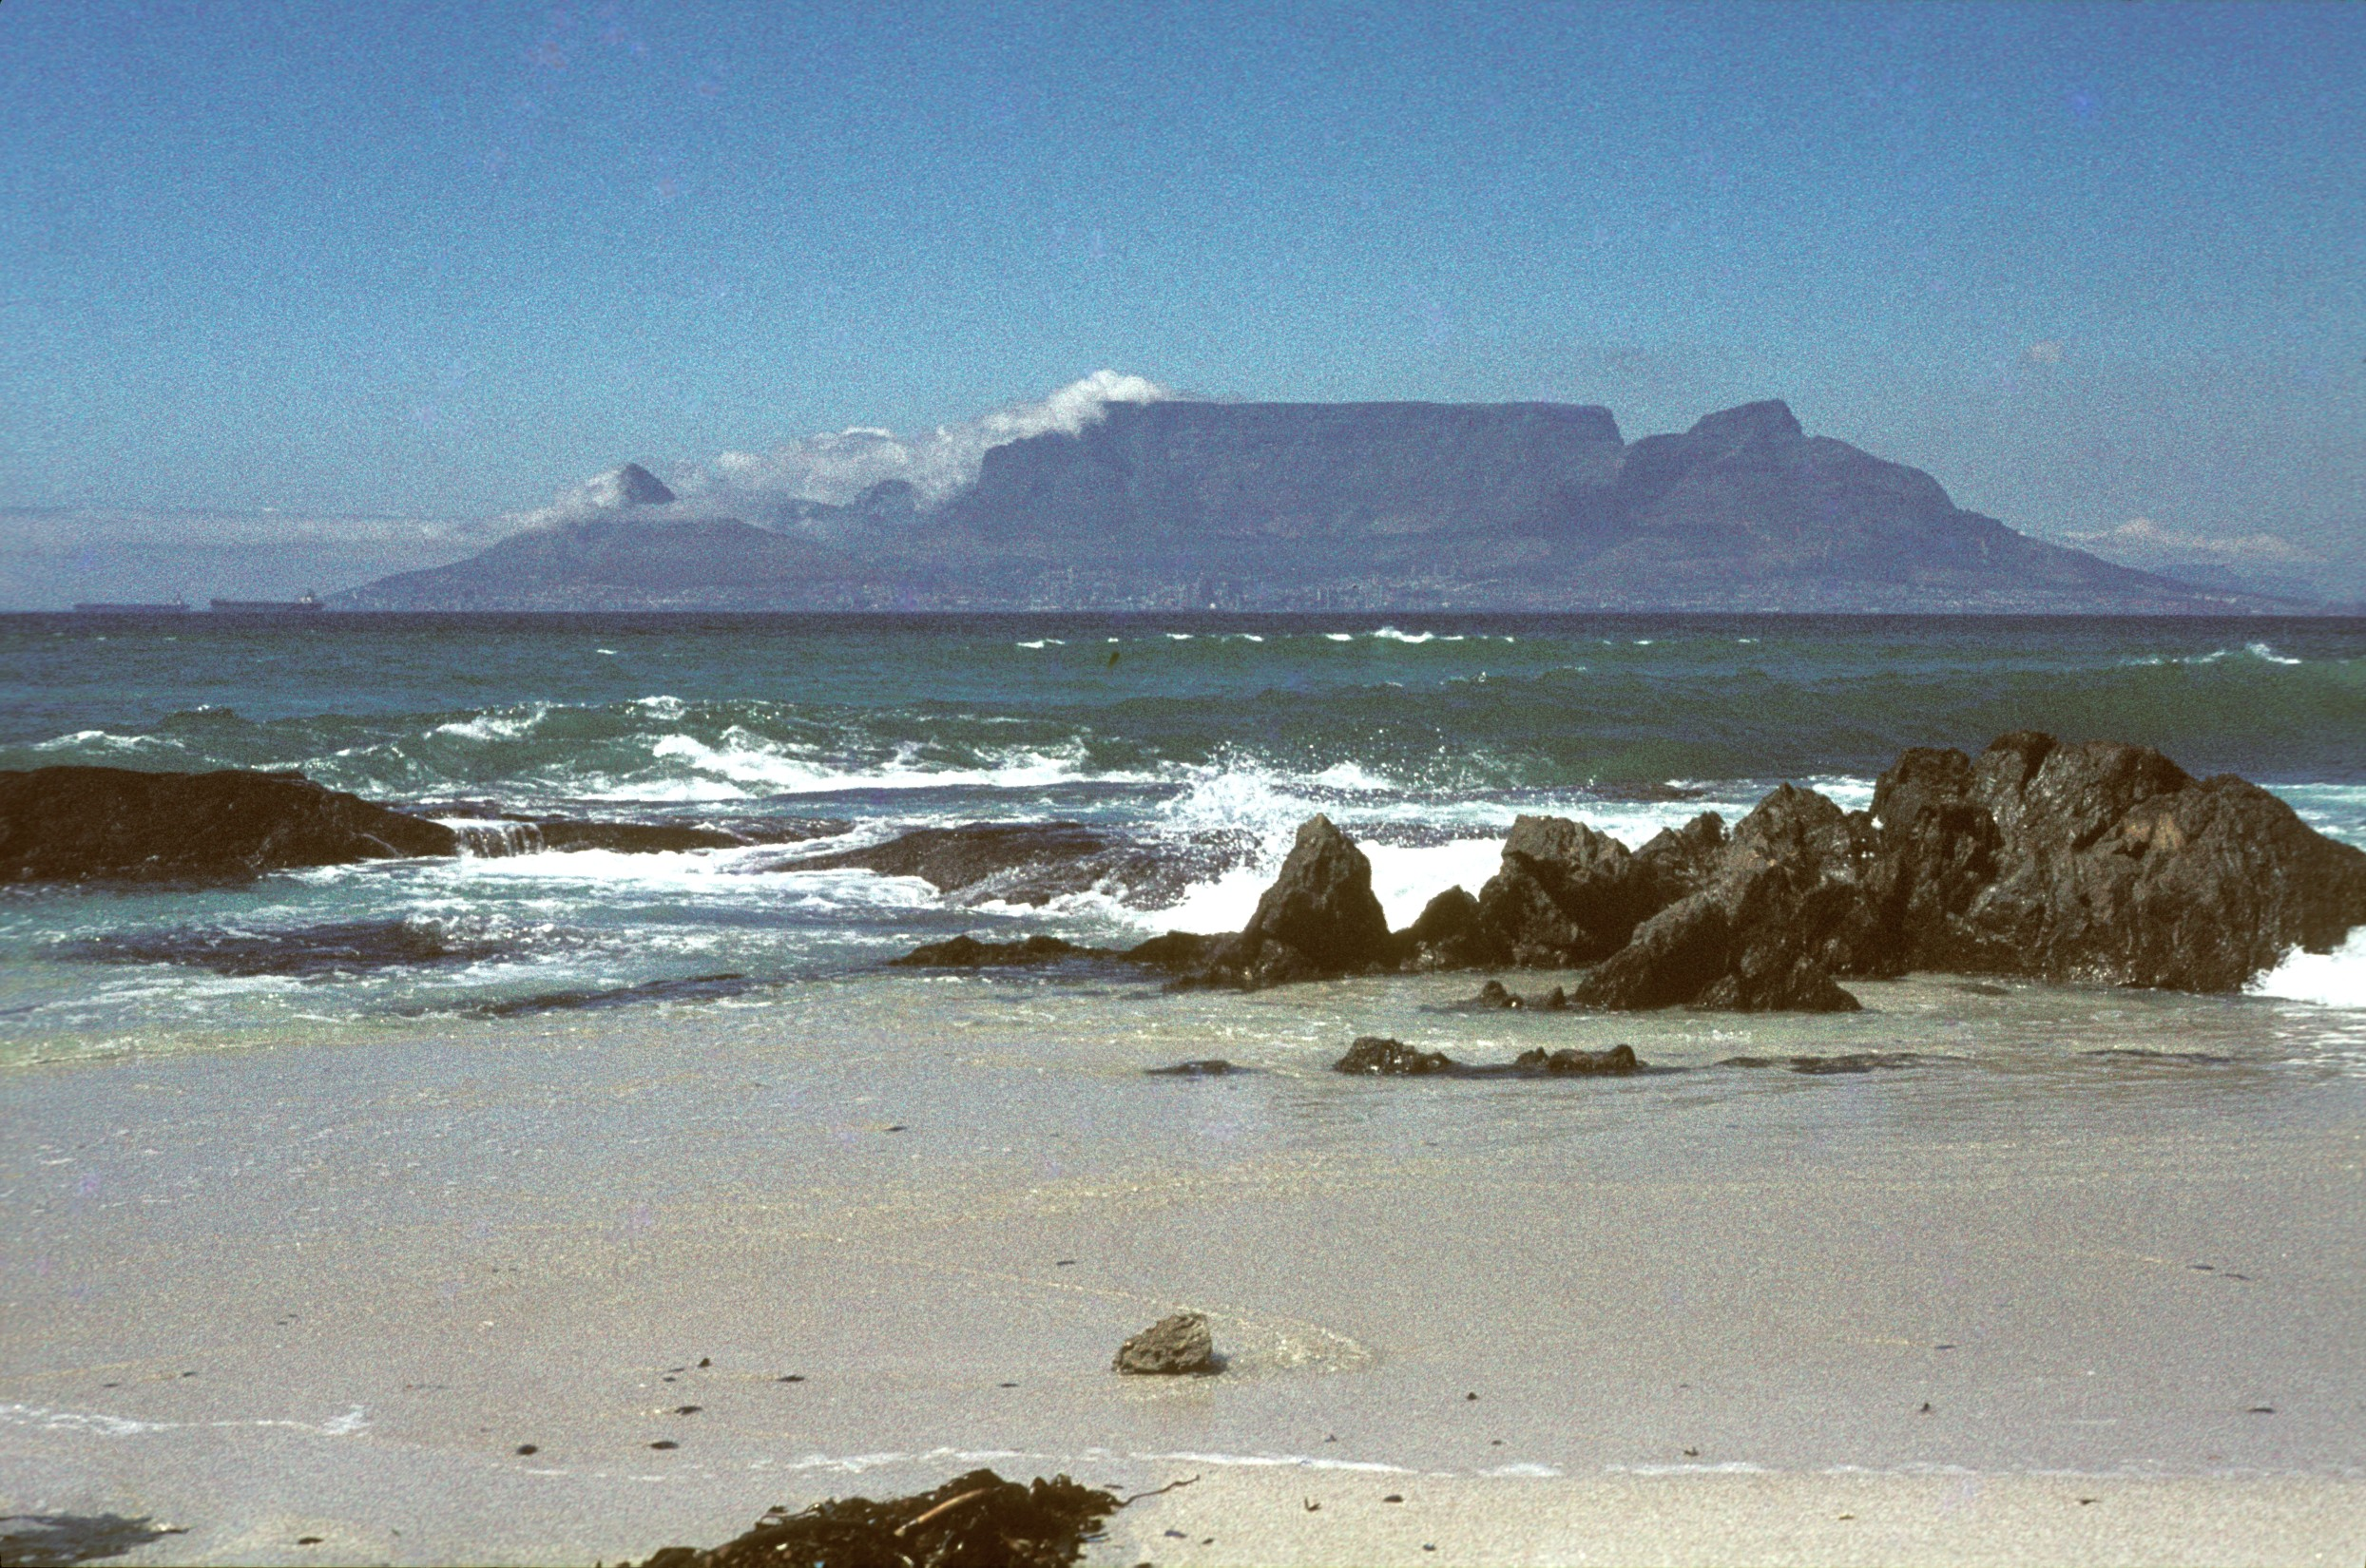 Table Mountain. The cloud cover is called the Table Cloth.